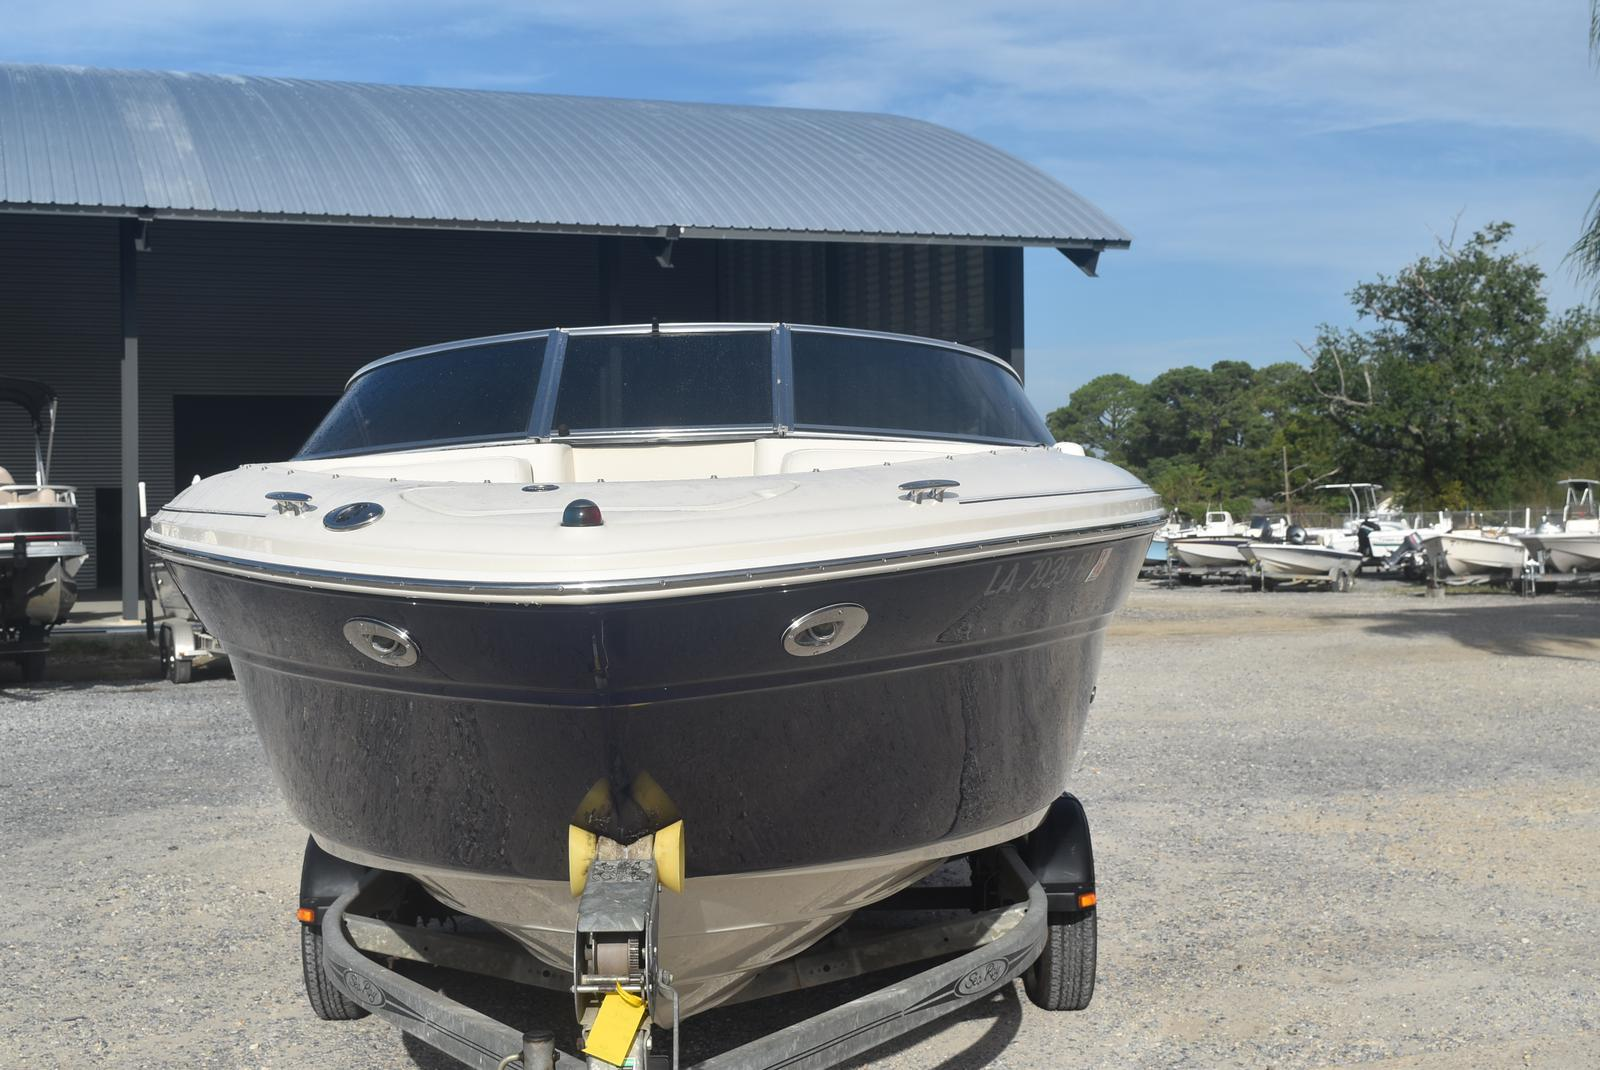 2006 Sea Ray boat for sale, model of the boat is 220 Select & Image # 14 of 17